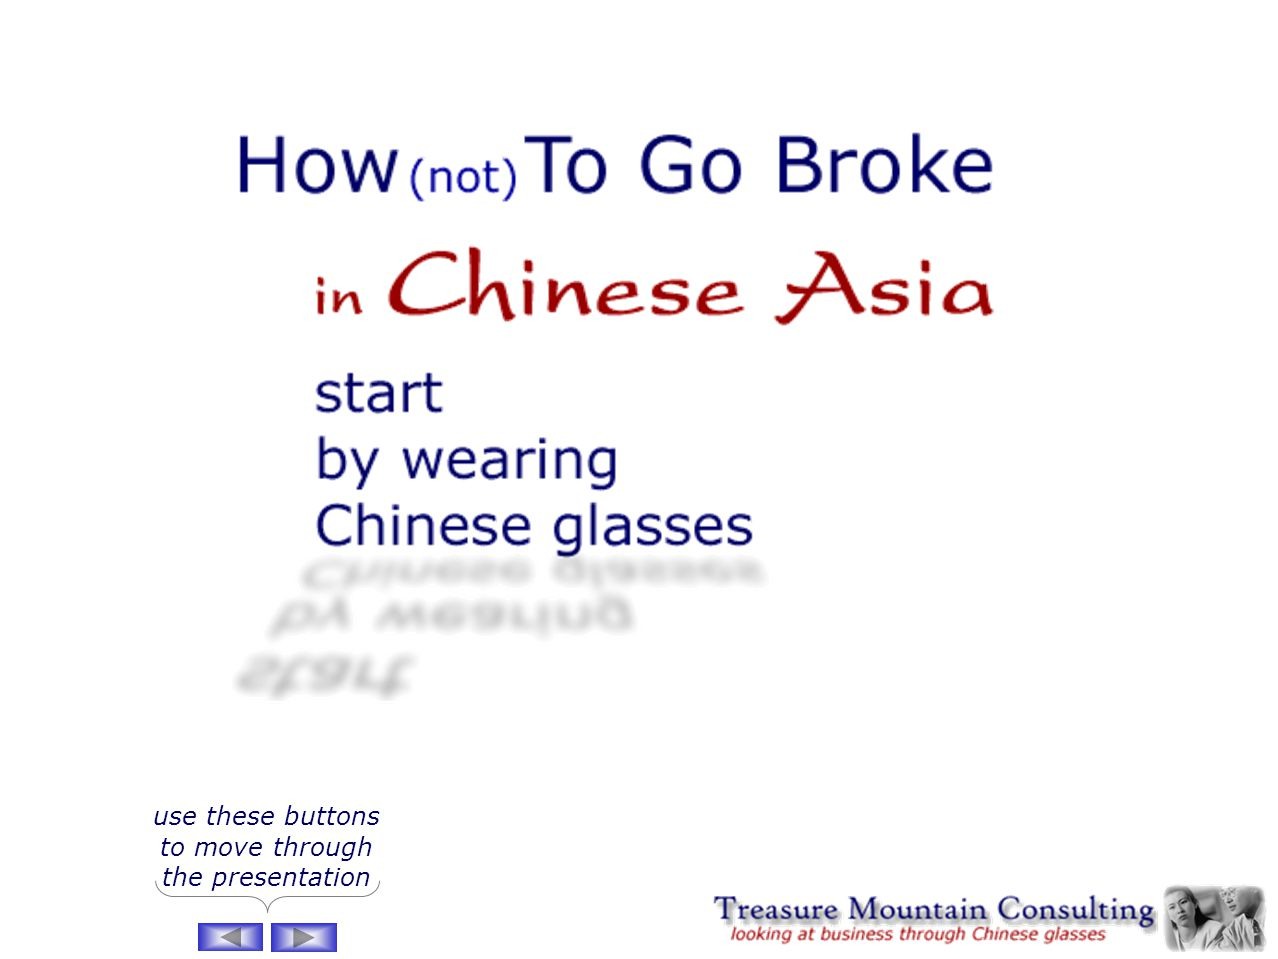 How (not) to Go Broke in Chinese Asia